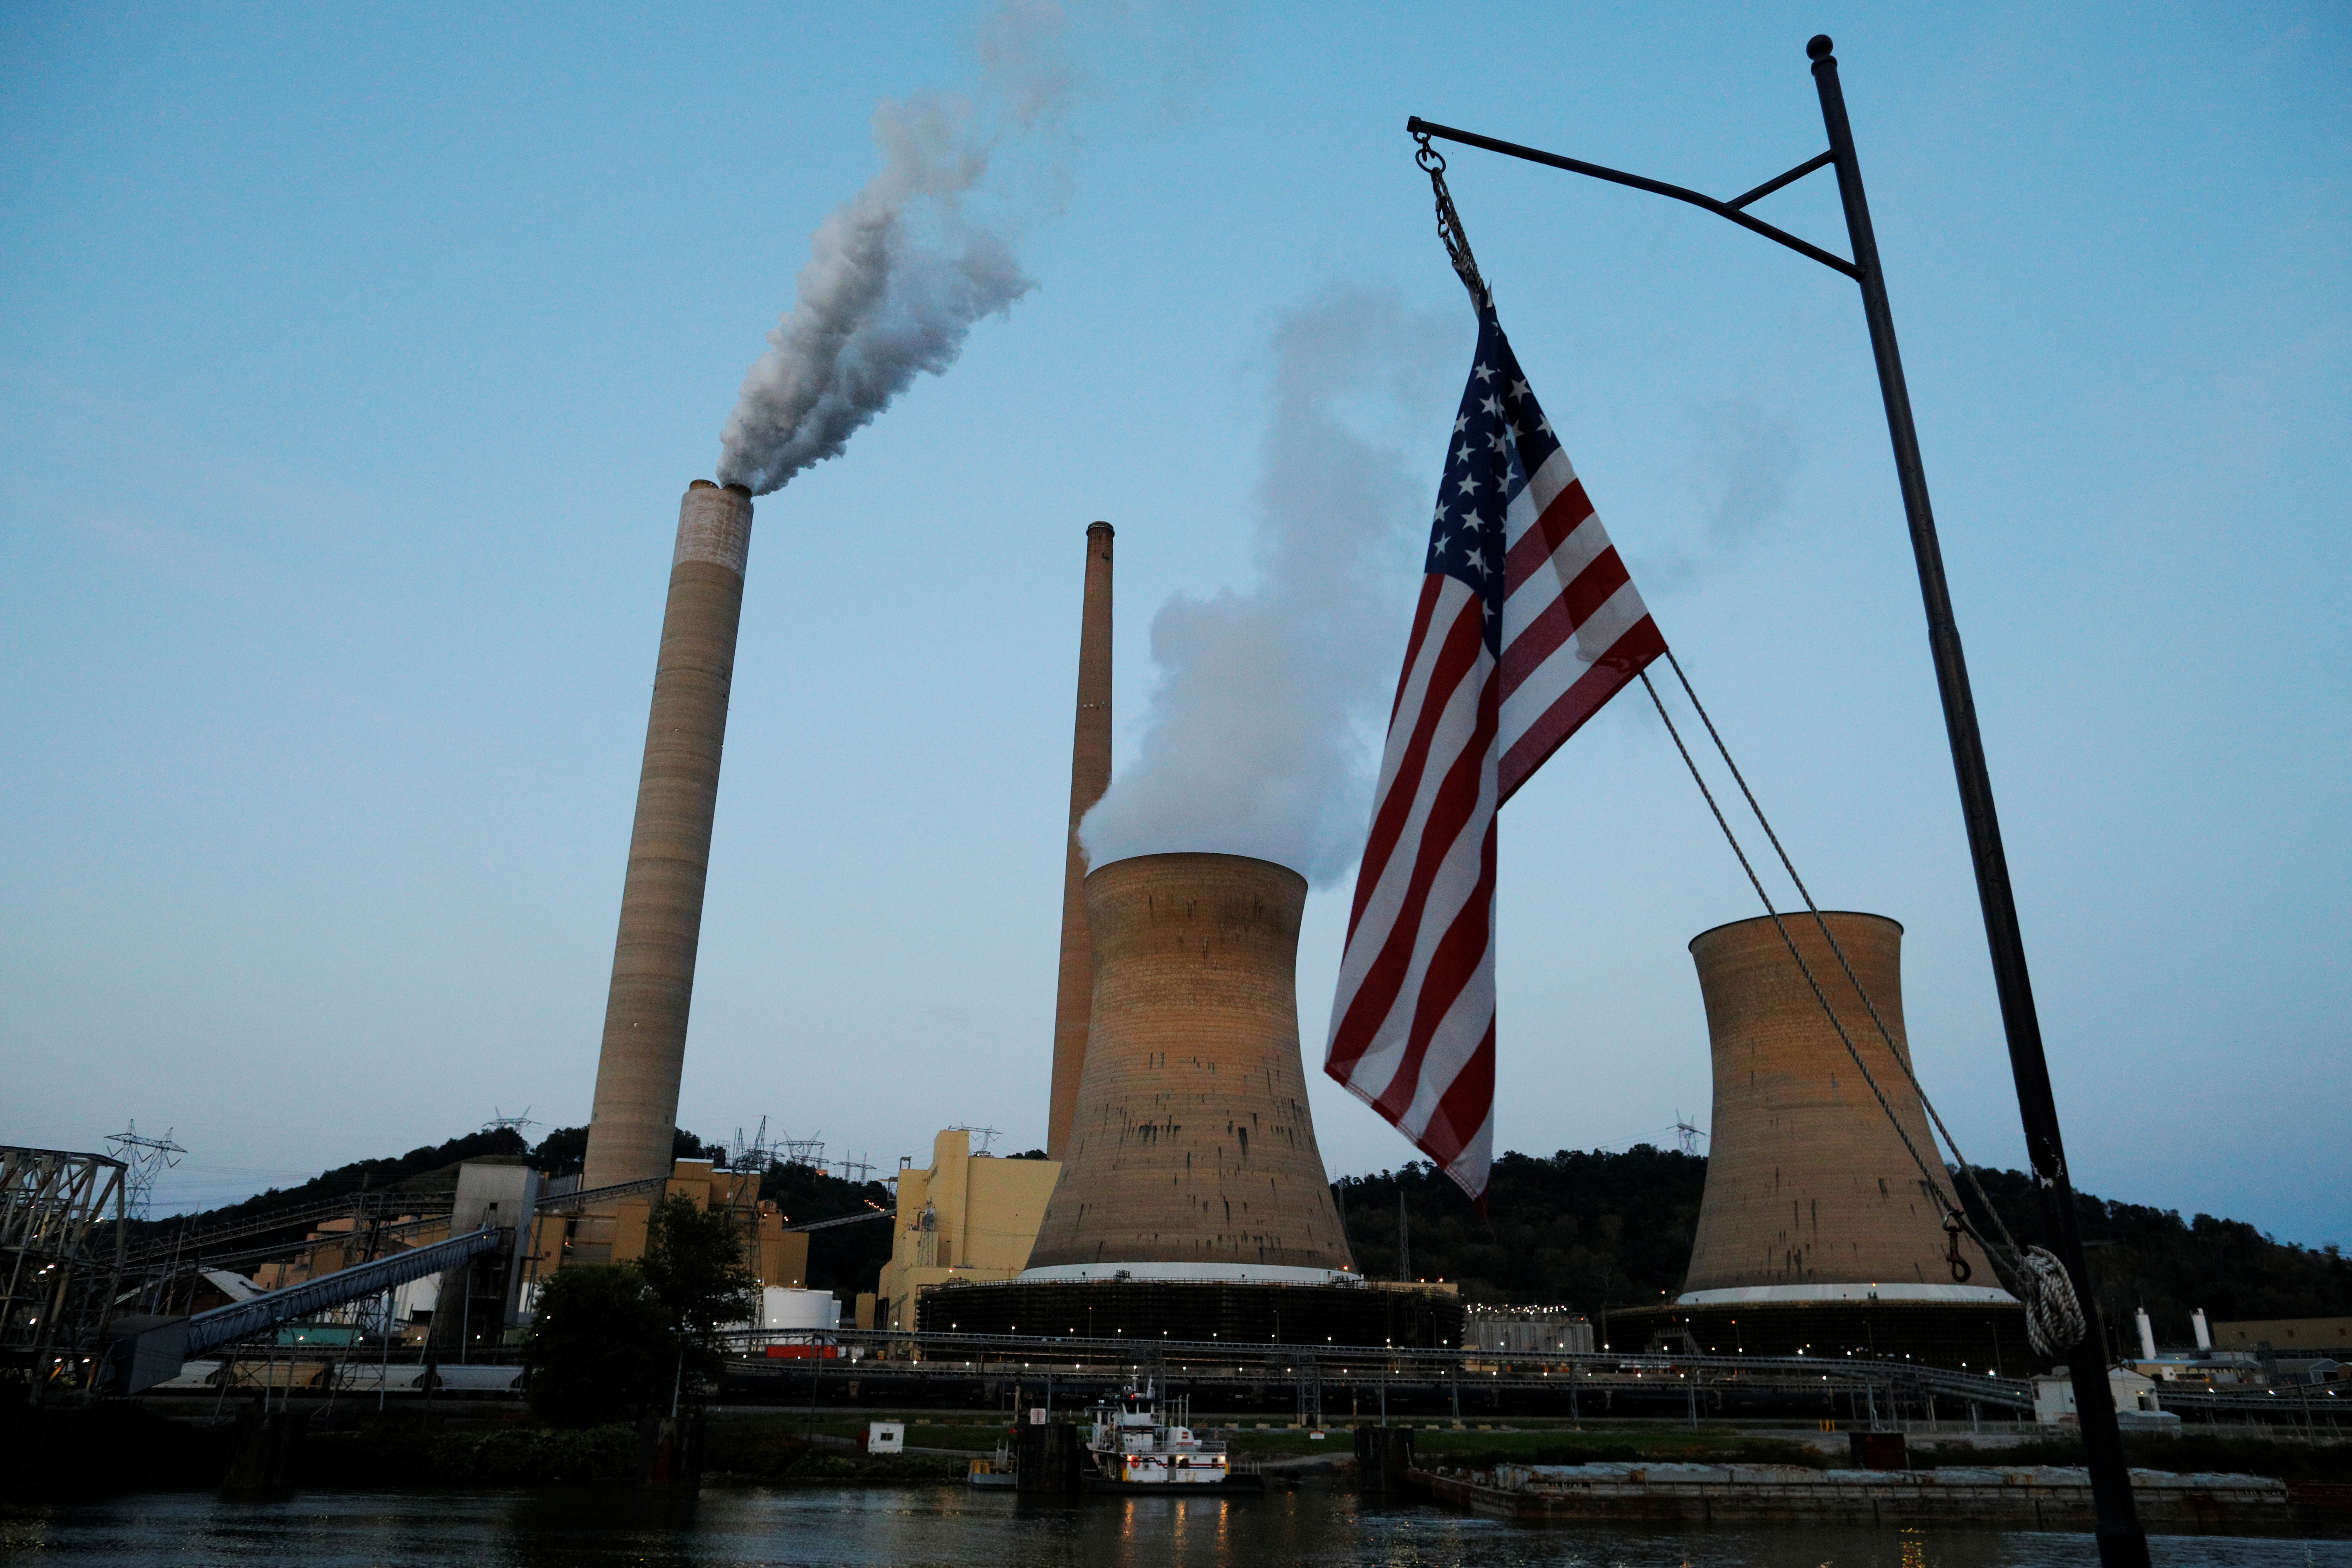 The U.S. flag flies on Campbell Transportation's towboat M.K. McNally as it passes Mitchell Power Plant, a coal-fired power-plant operated by American Electric Power (AEP), on the Ohio River in Moundsville, West Virginia, U.S., September 10, 2017. Photograph taken at N39°49.767' W80°49.357'. Photograph taken September 10, 2017. REUTERS/Brian Snyder - RC198743DAC0